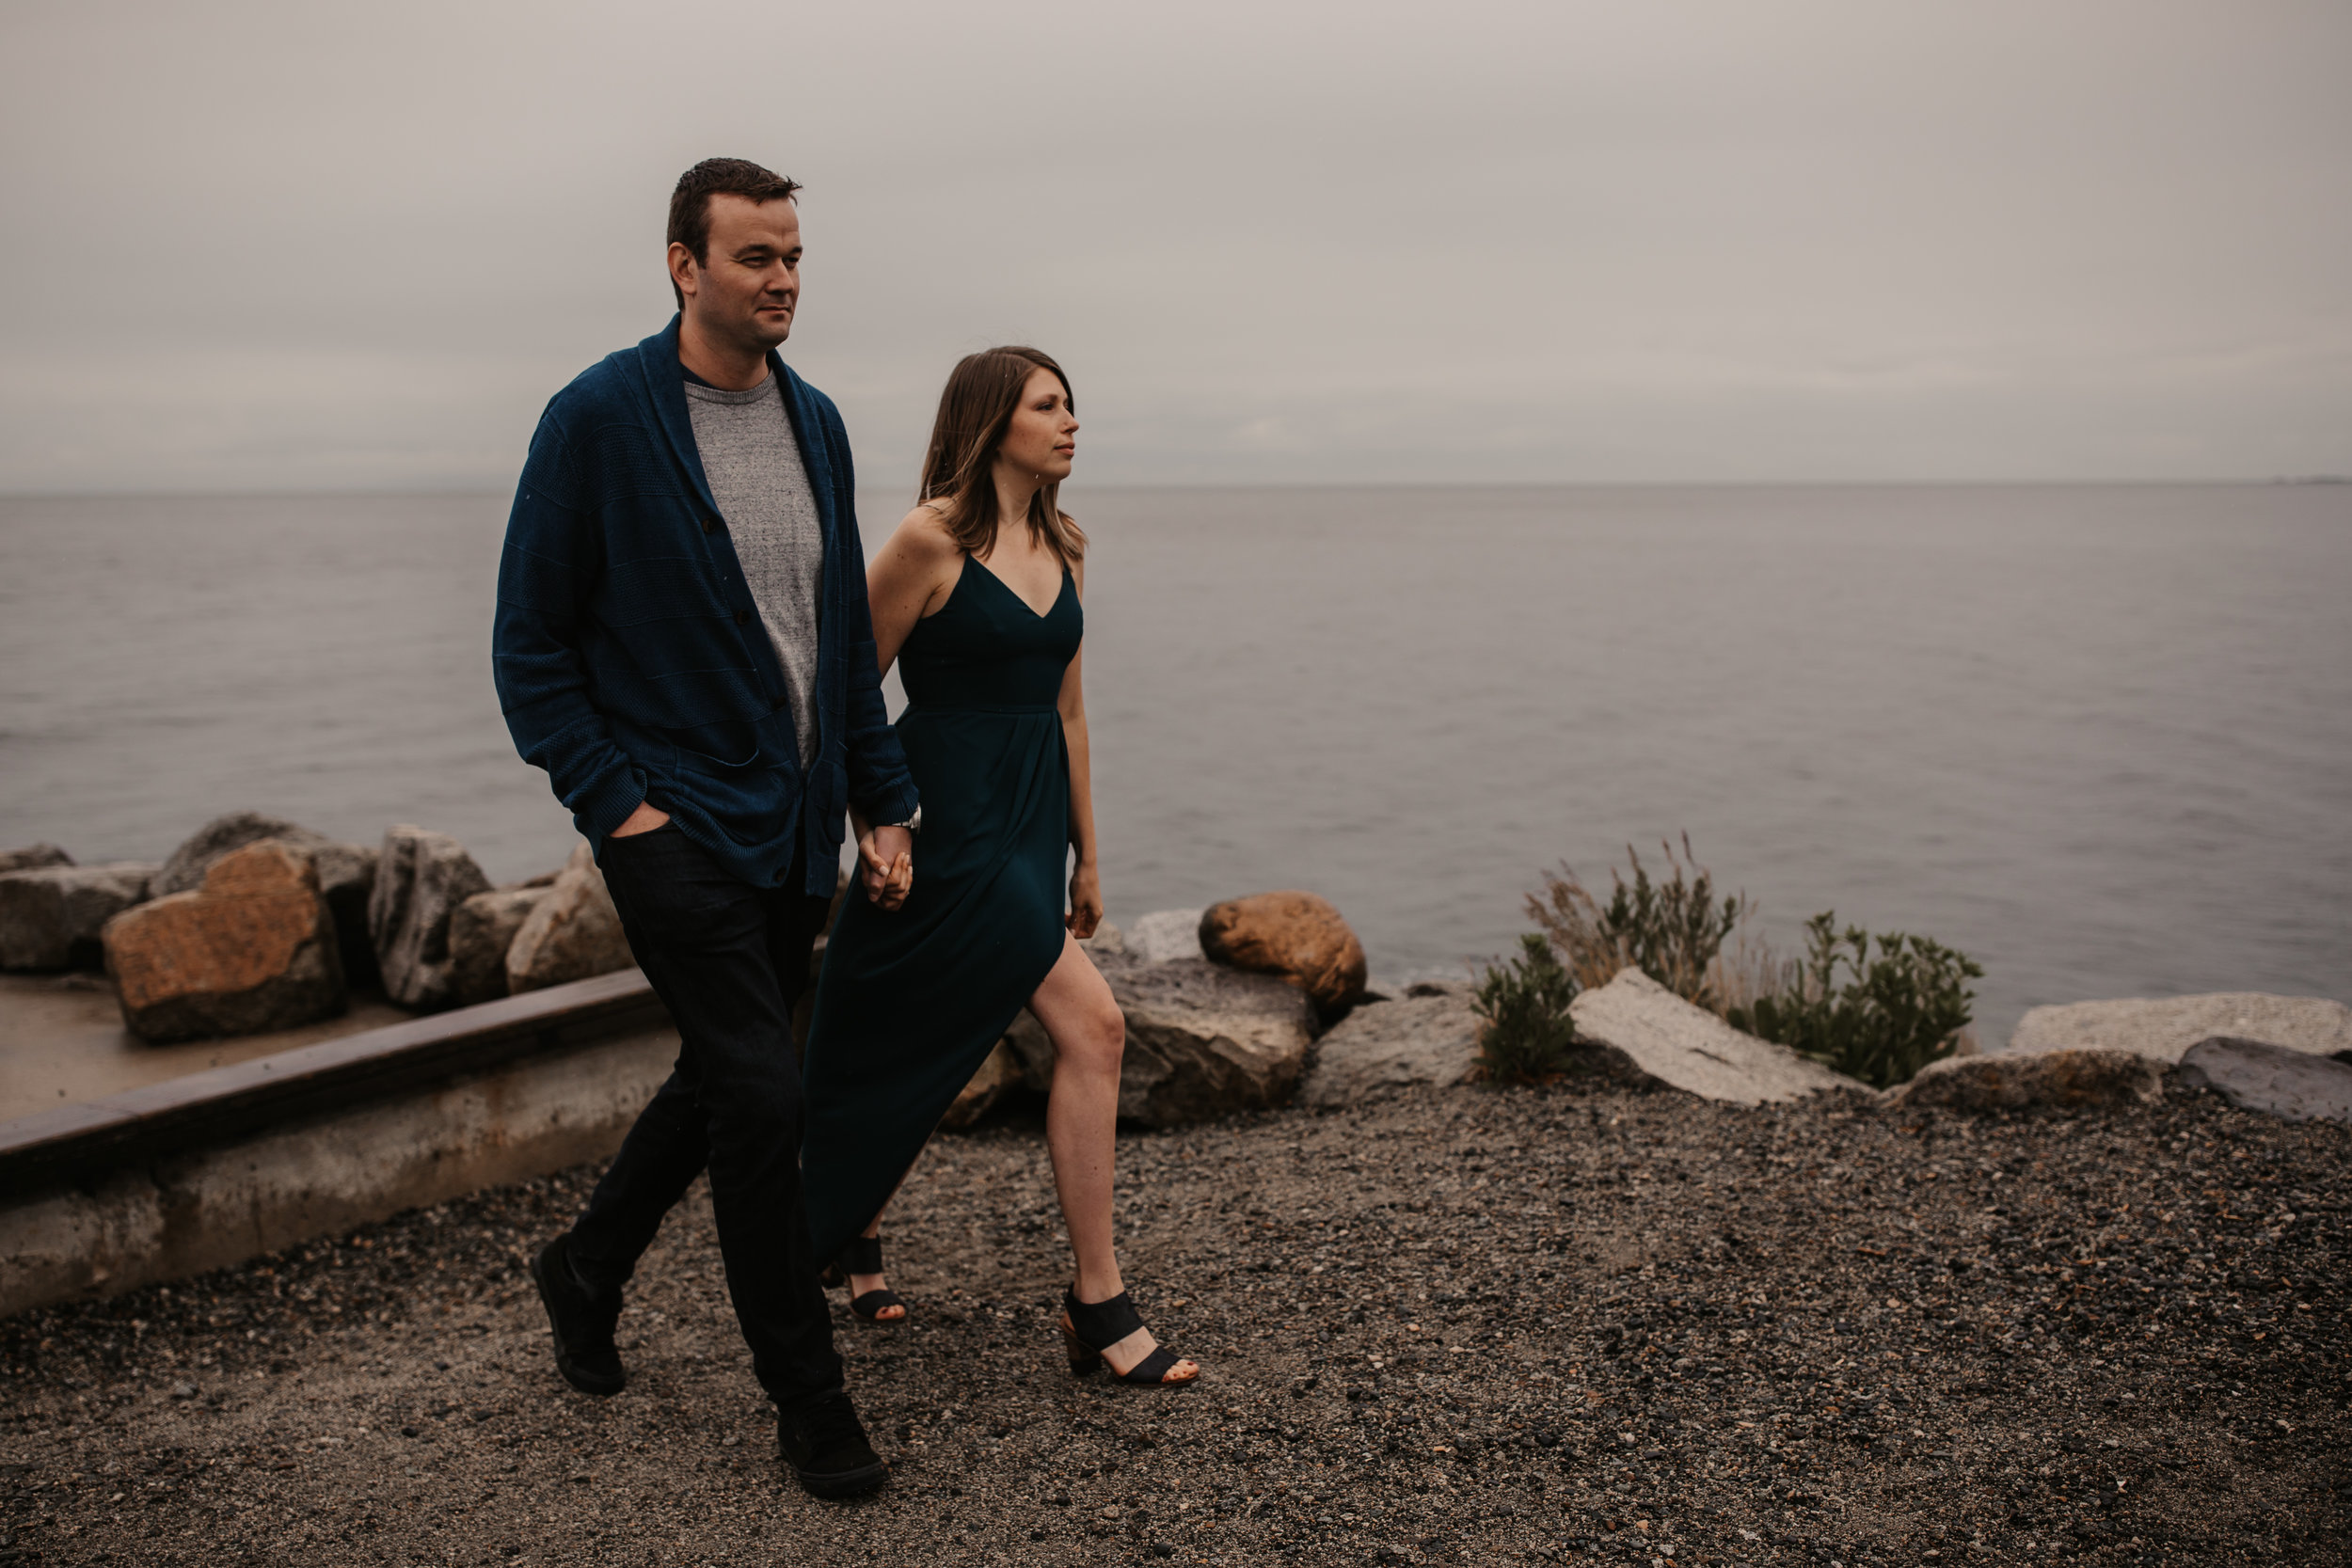 SUNSHINE COAST FOREST & BEACH ENGAGEMENT PHOTOS — Ashley & Antoine — JENNIFER PICARD PHOTOGRAPHY262.JPG